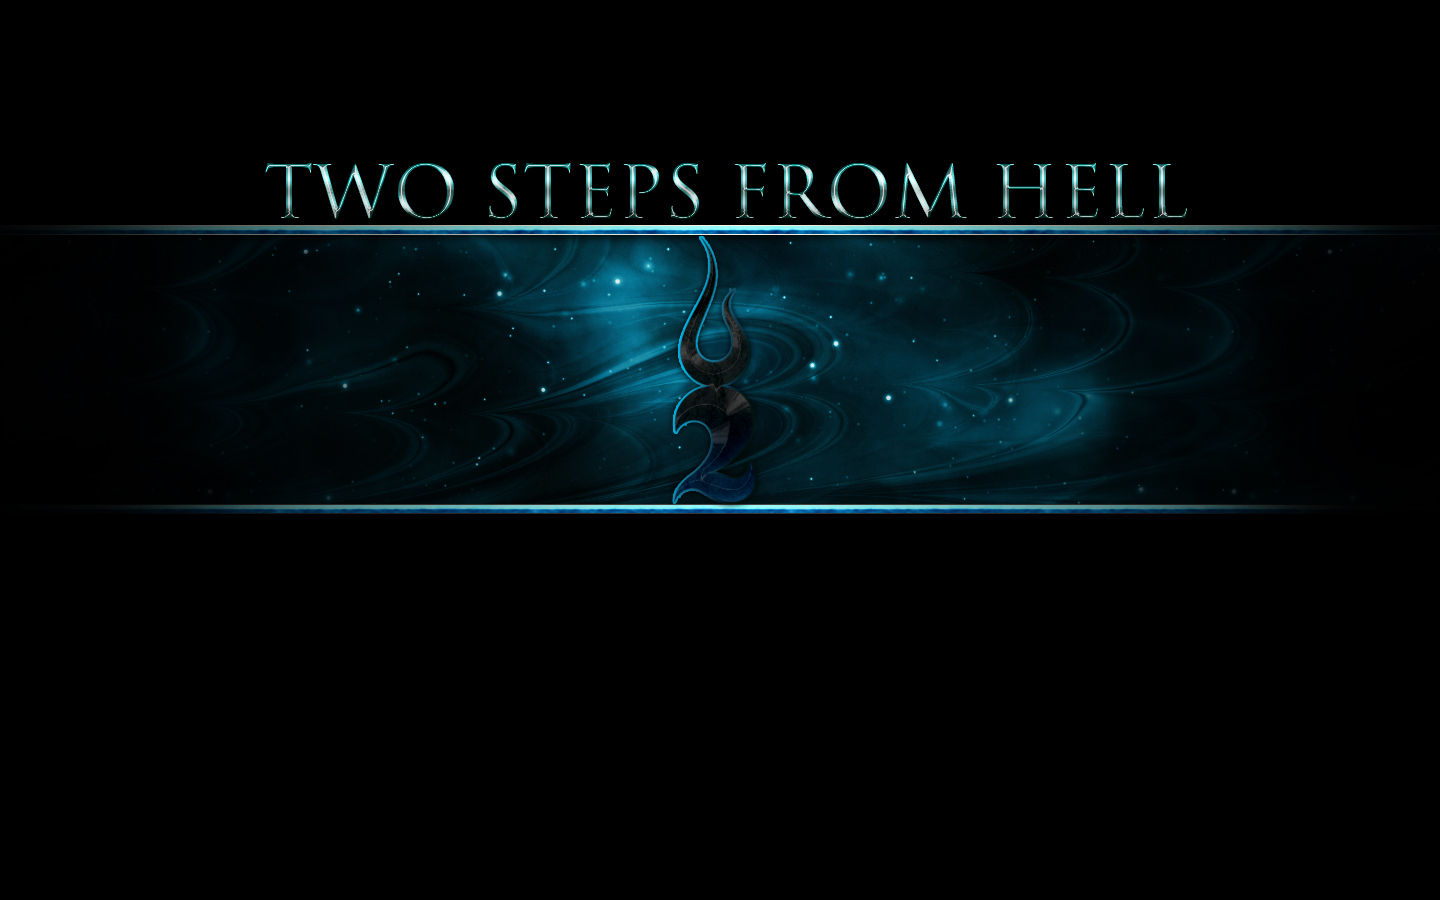 1000 Images About Two Steps From Hell On Pinterest HD Wallpapers Download Free Images Wallpaper [1000image.com]